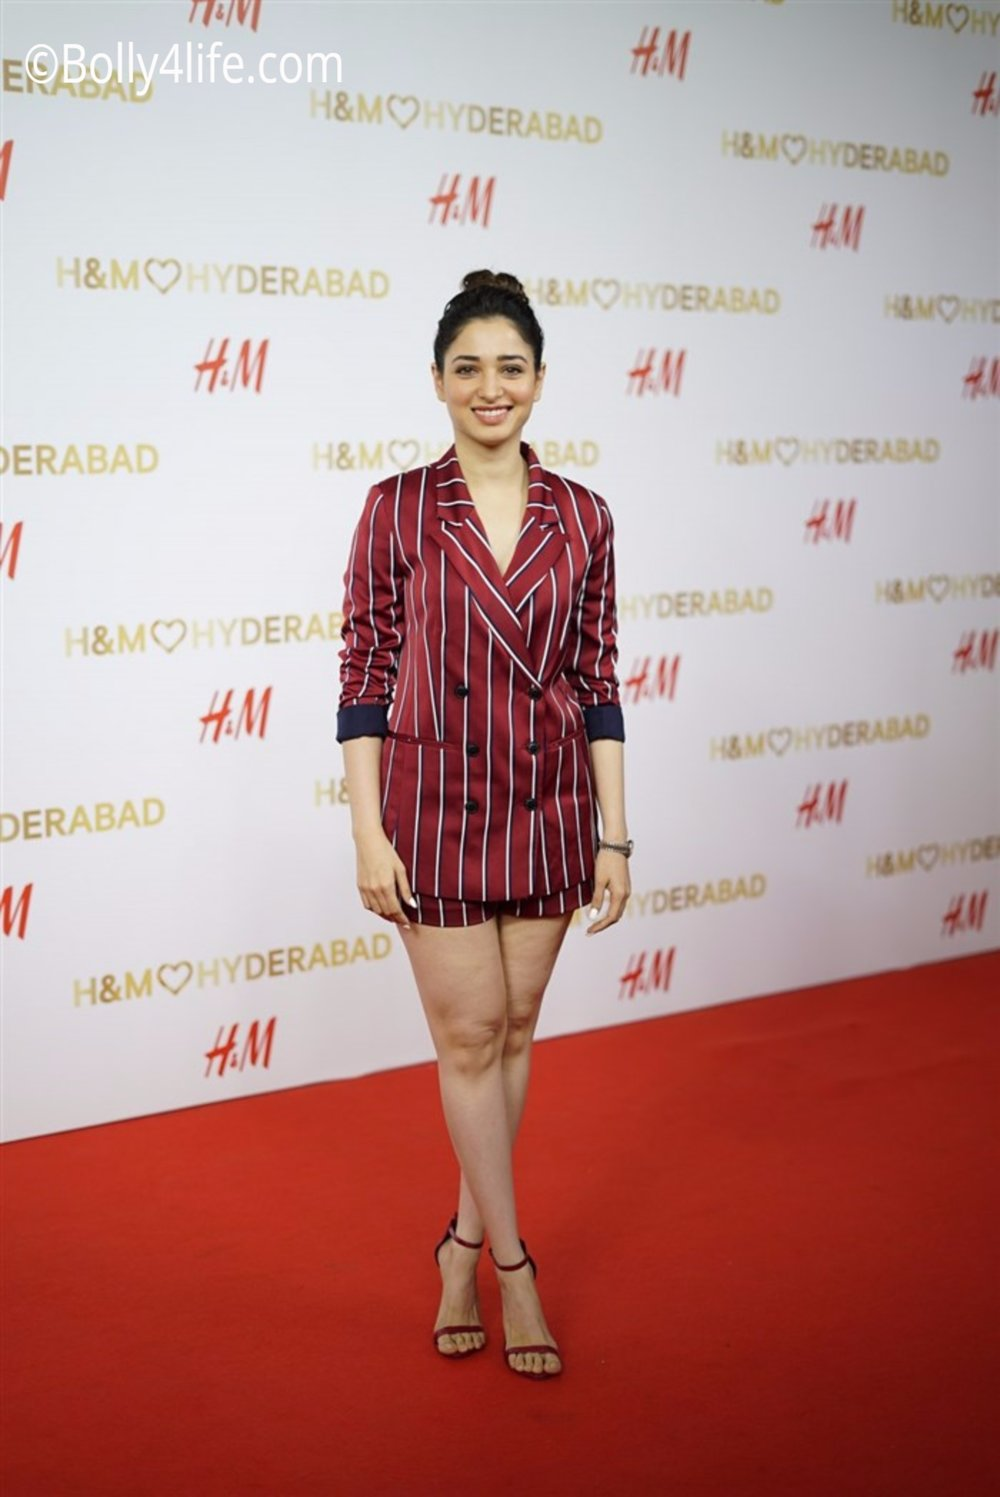 actress-hms-vip-party-inorbit-mall-hyderabad-4d5de58.jpg